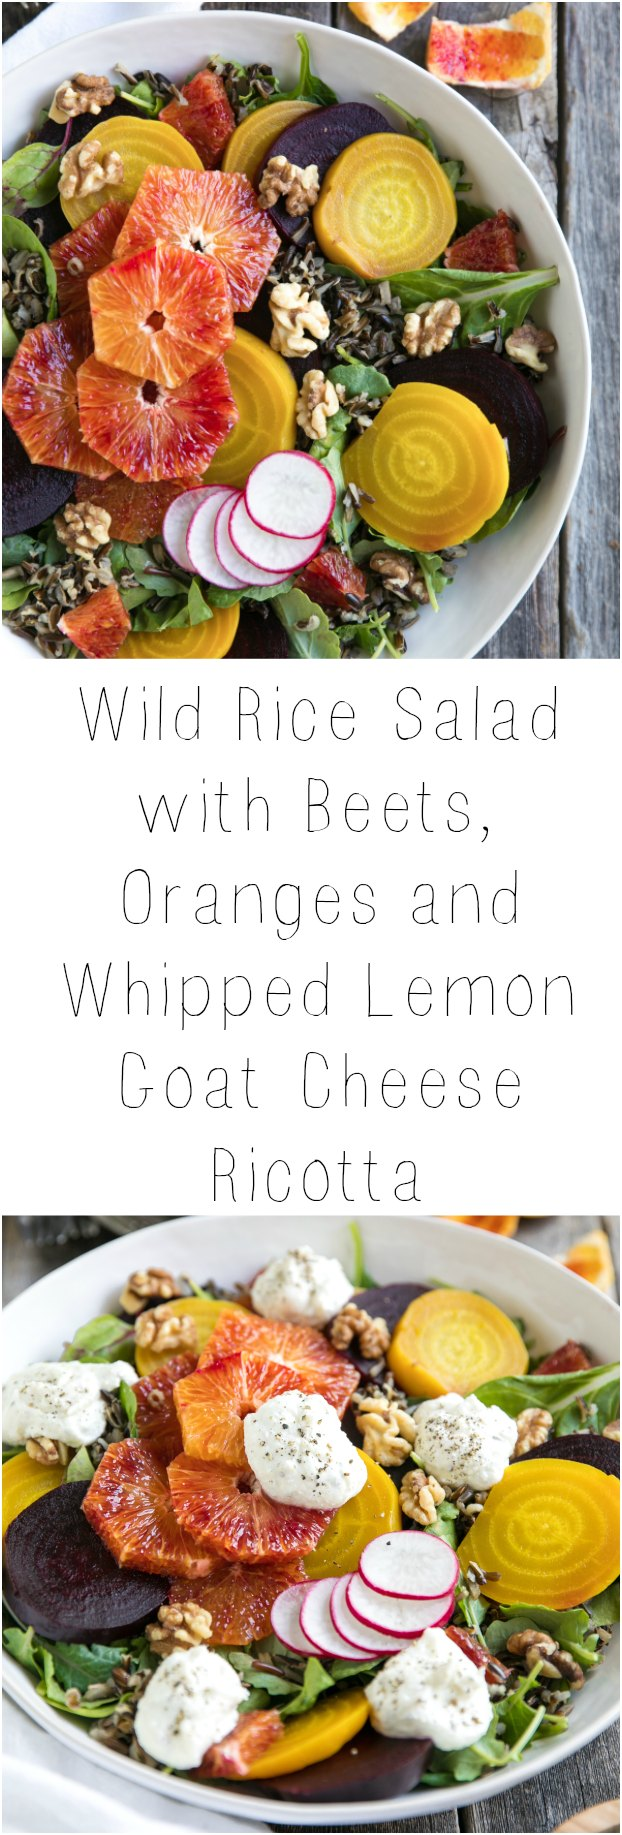 Wild Rice Salad with Beets, Oranges and Whipped Lemon Ricotta.  #salad #healthy #glutenfree #side #healthyrecipes